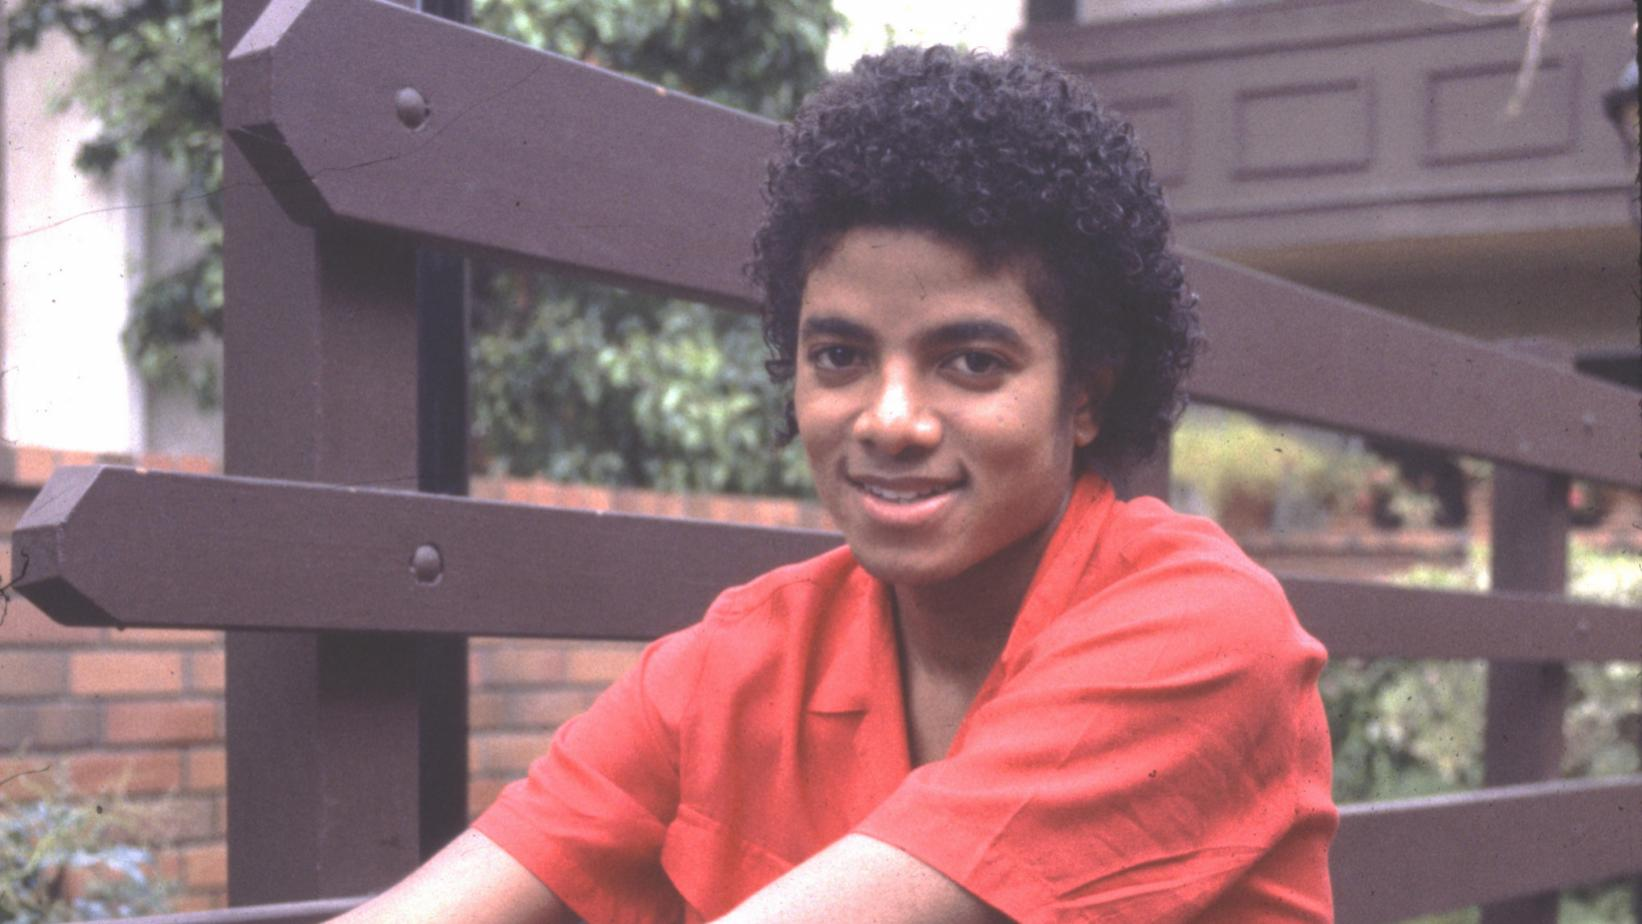 Michael Jackson in 1979